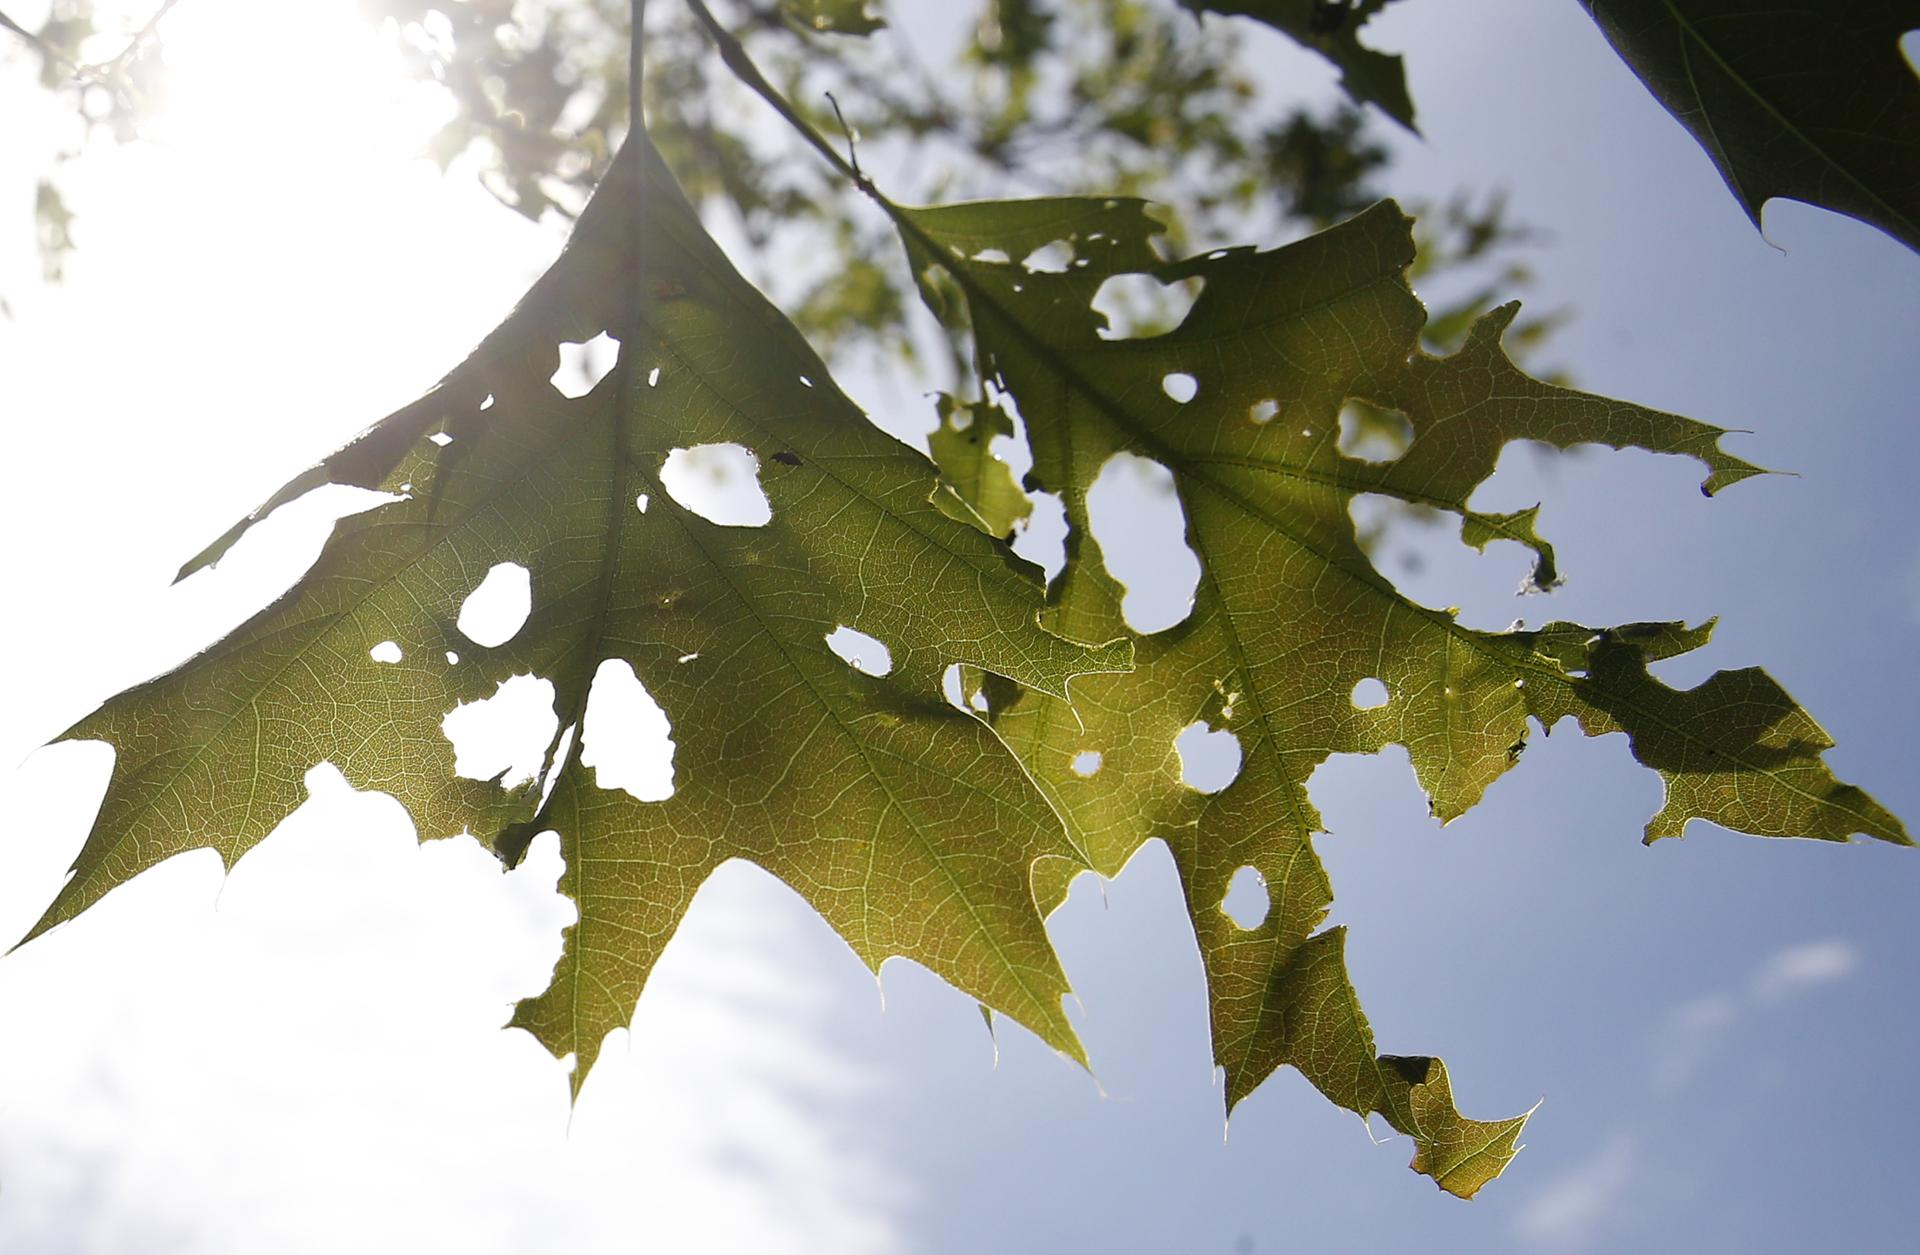 tiny famished winter moth caterpillars wreaking havoc on trees